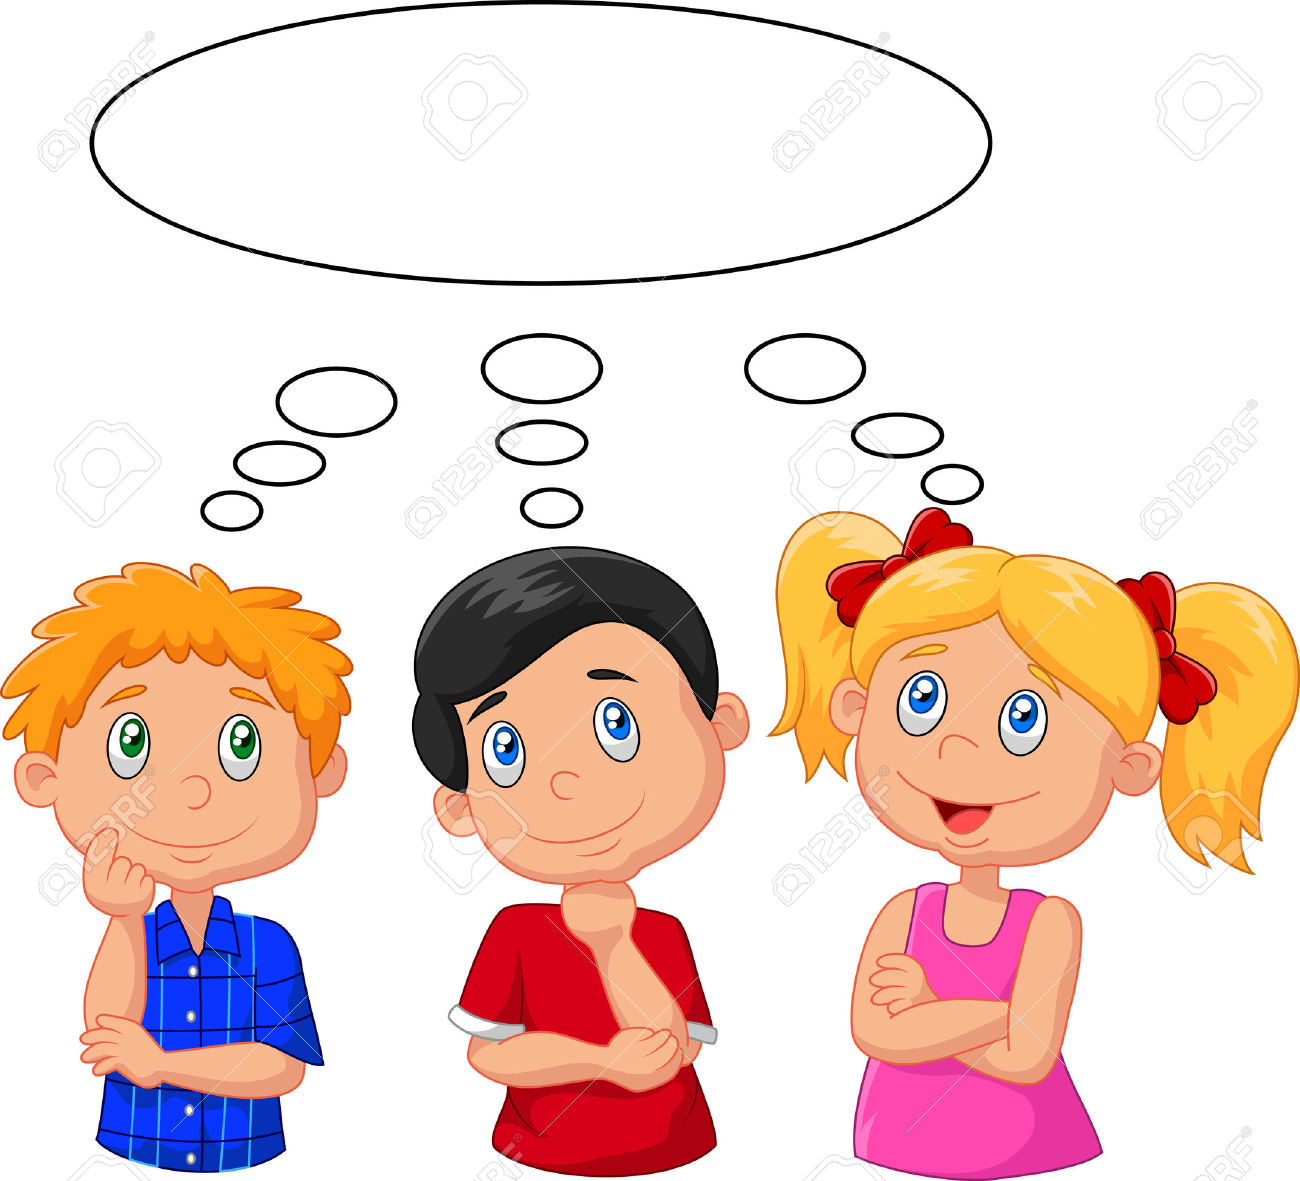 Child thinking clipart 5 » Clipart Station.